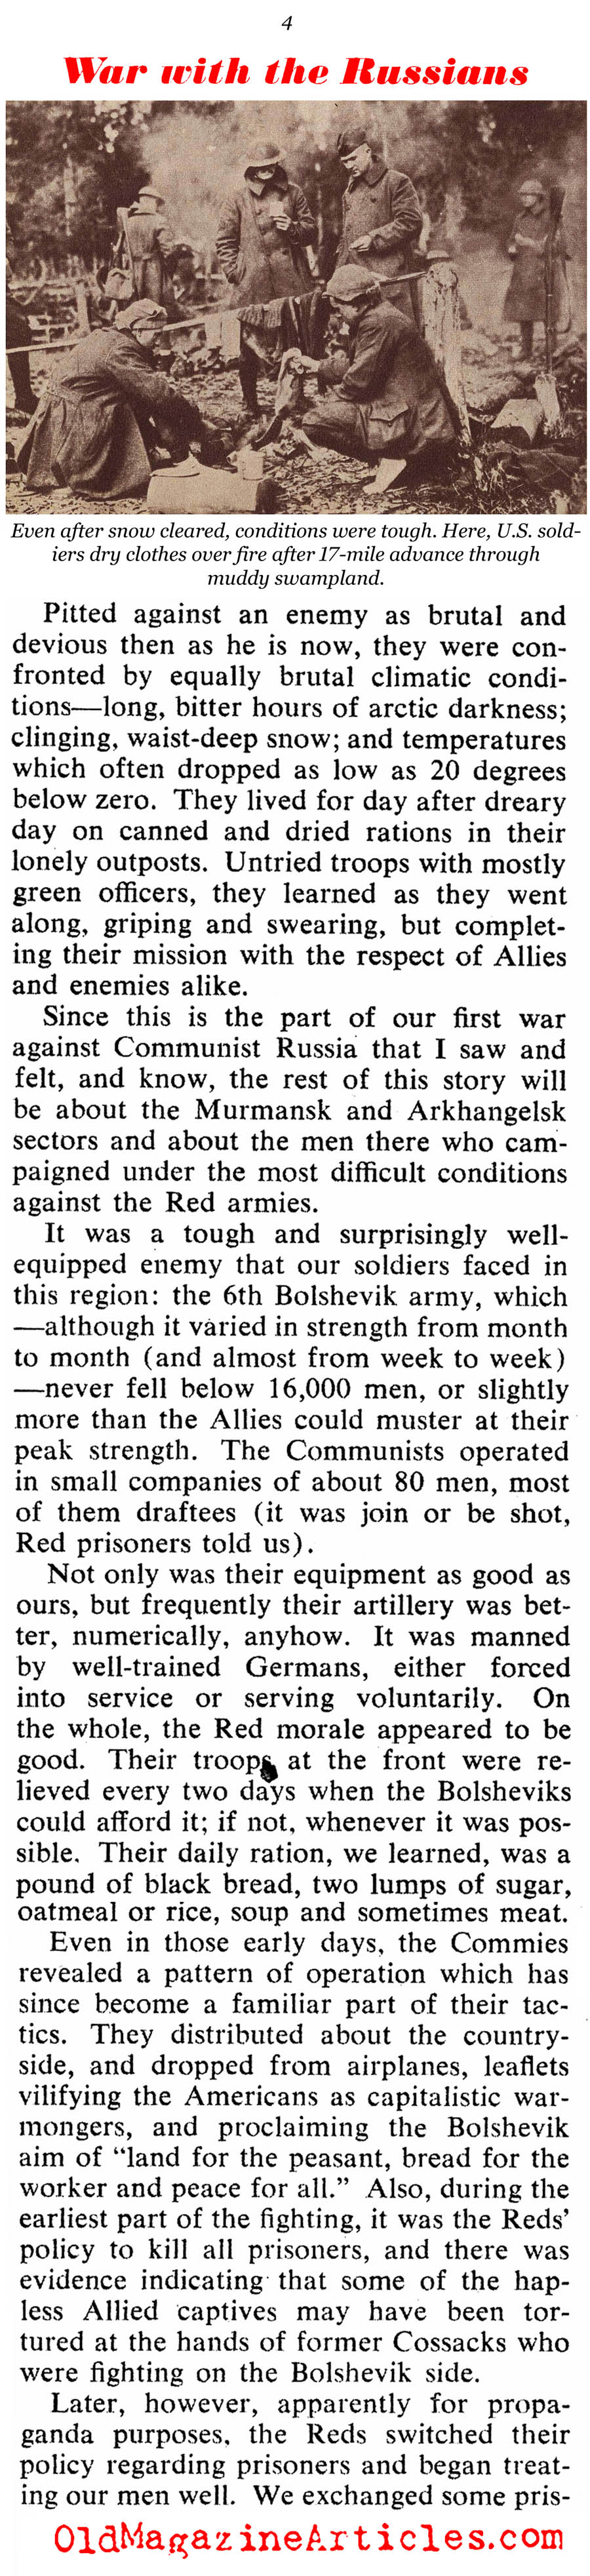 ''Our First War With The Russians'' (Collier's Magazine, 1951)